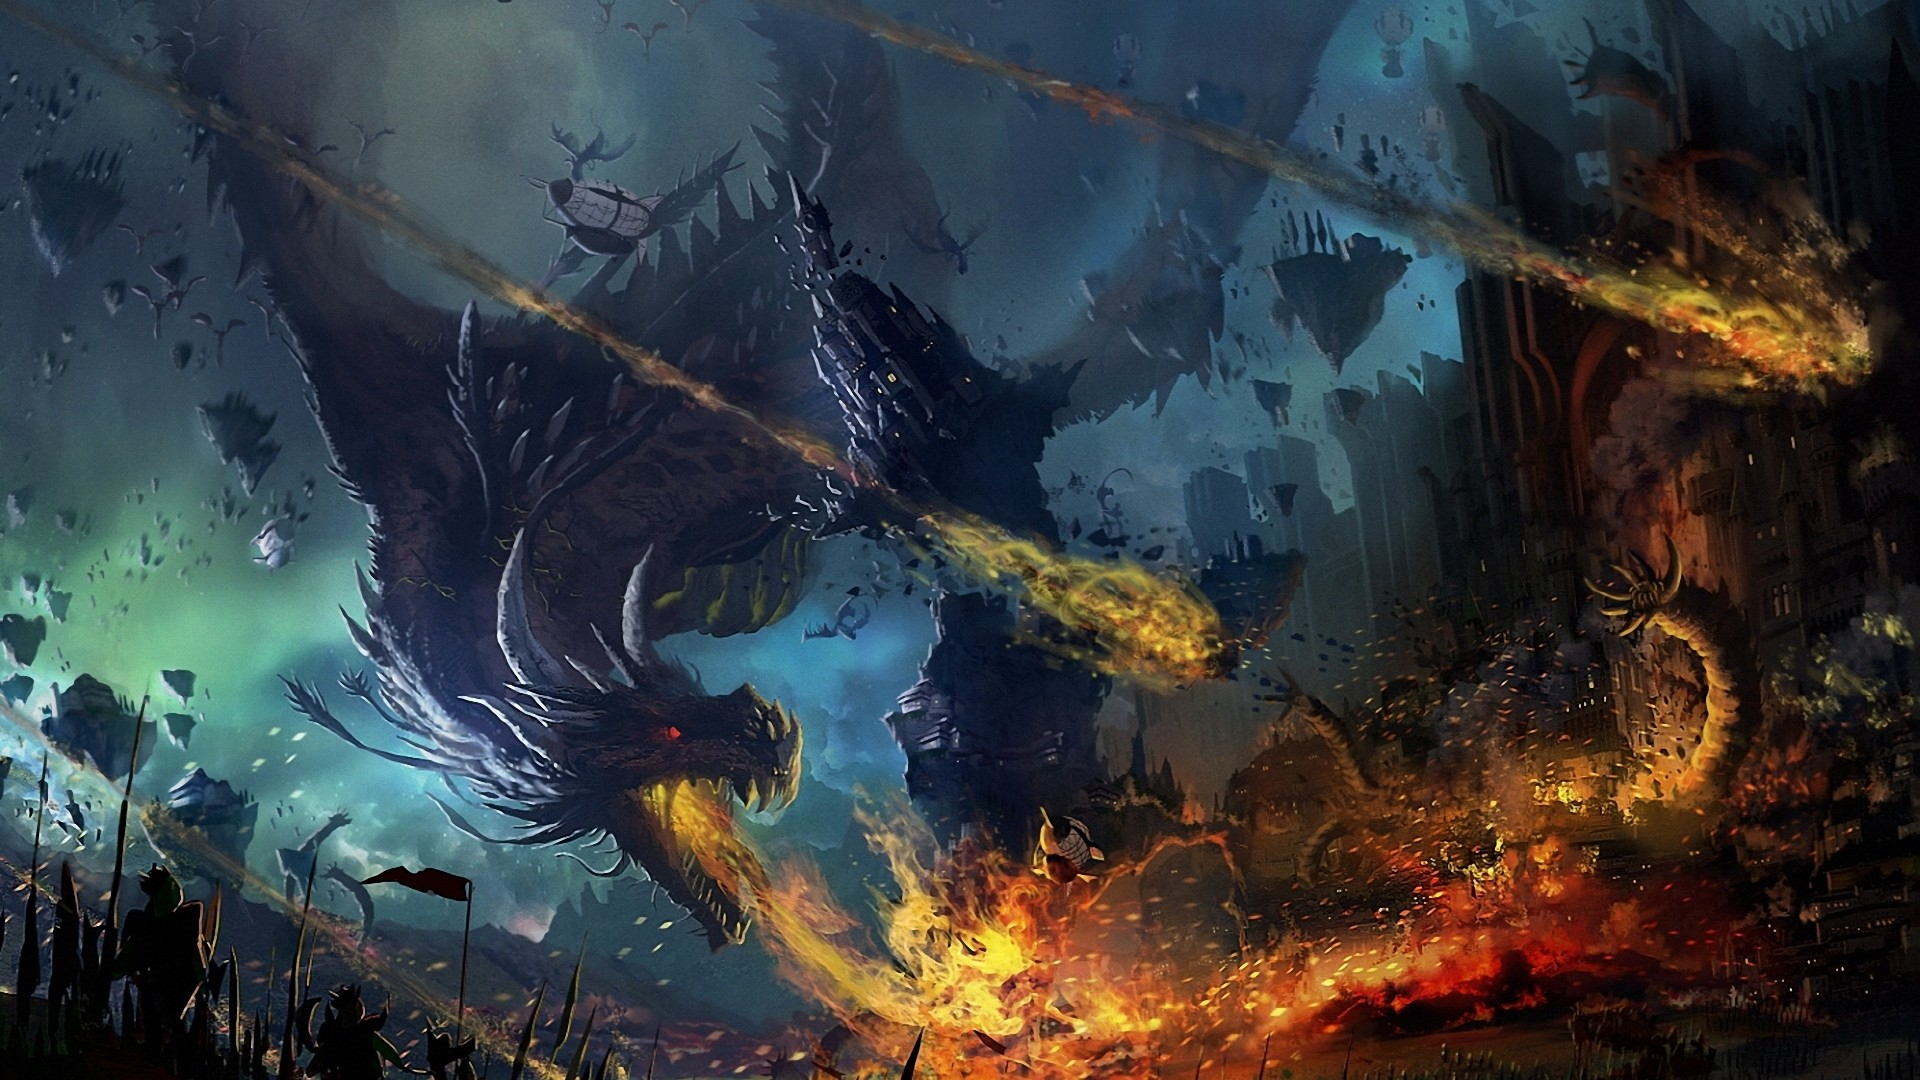 ice dragon hd widescreen wallpapers amazing wallpaperz 1920x1080